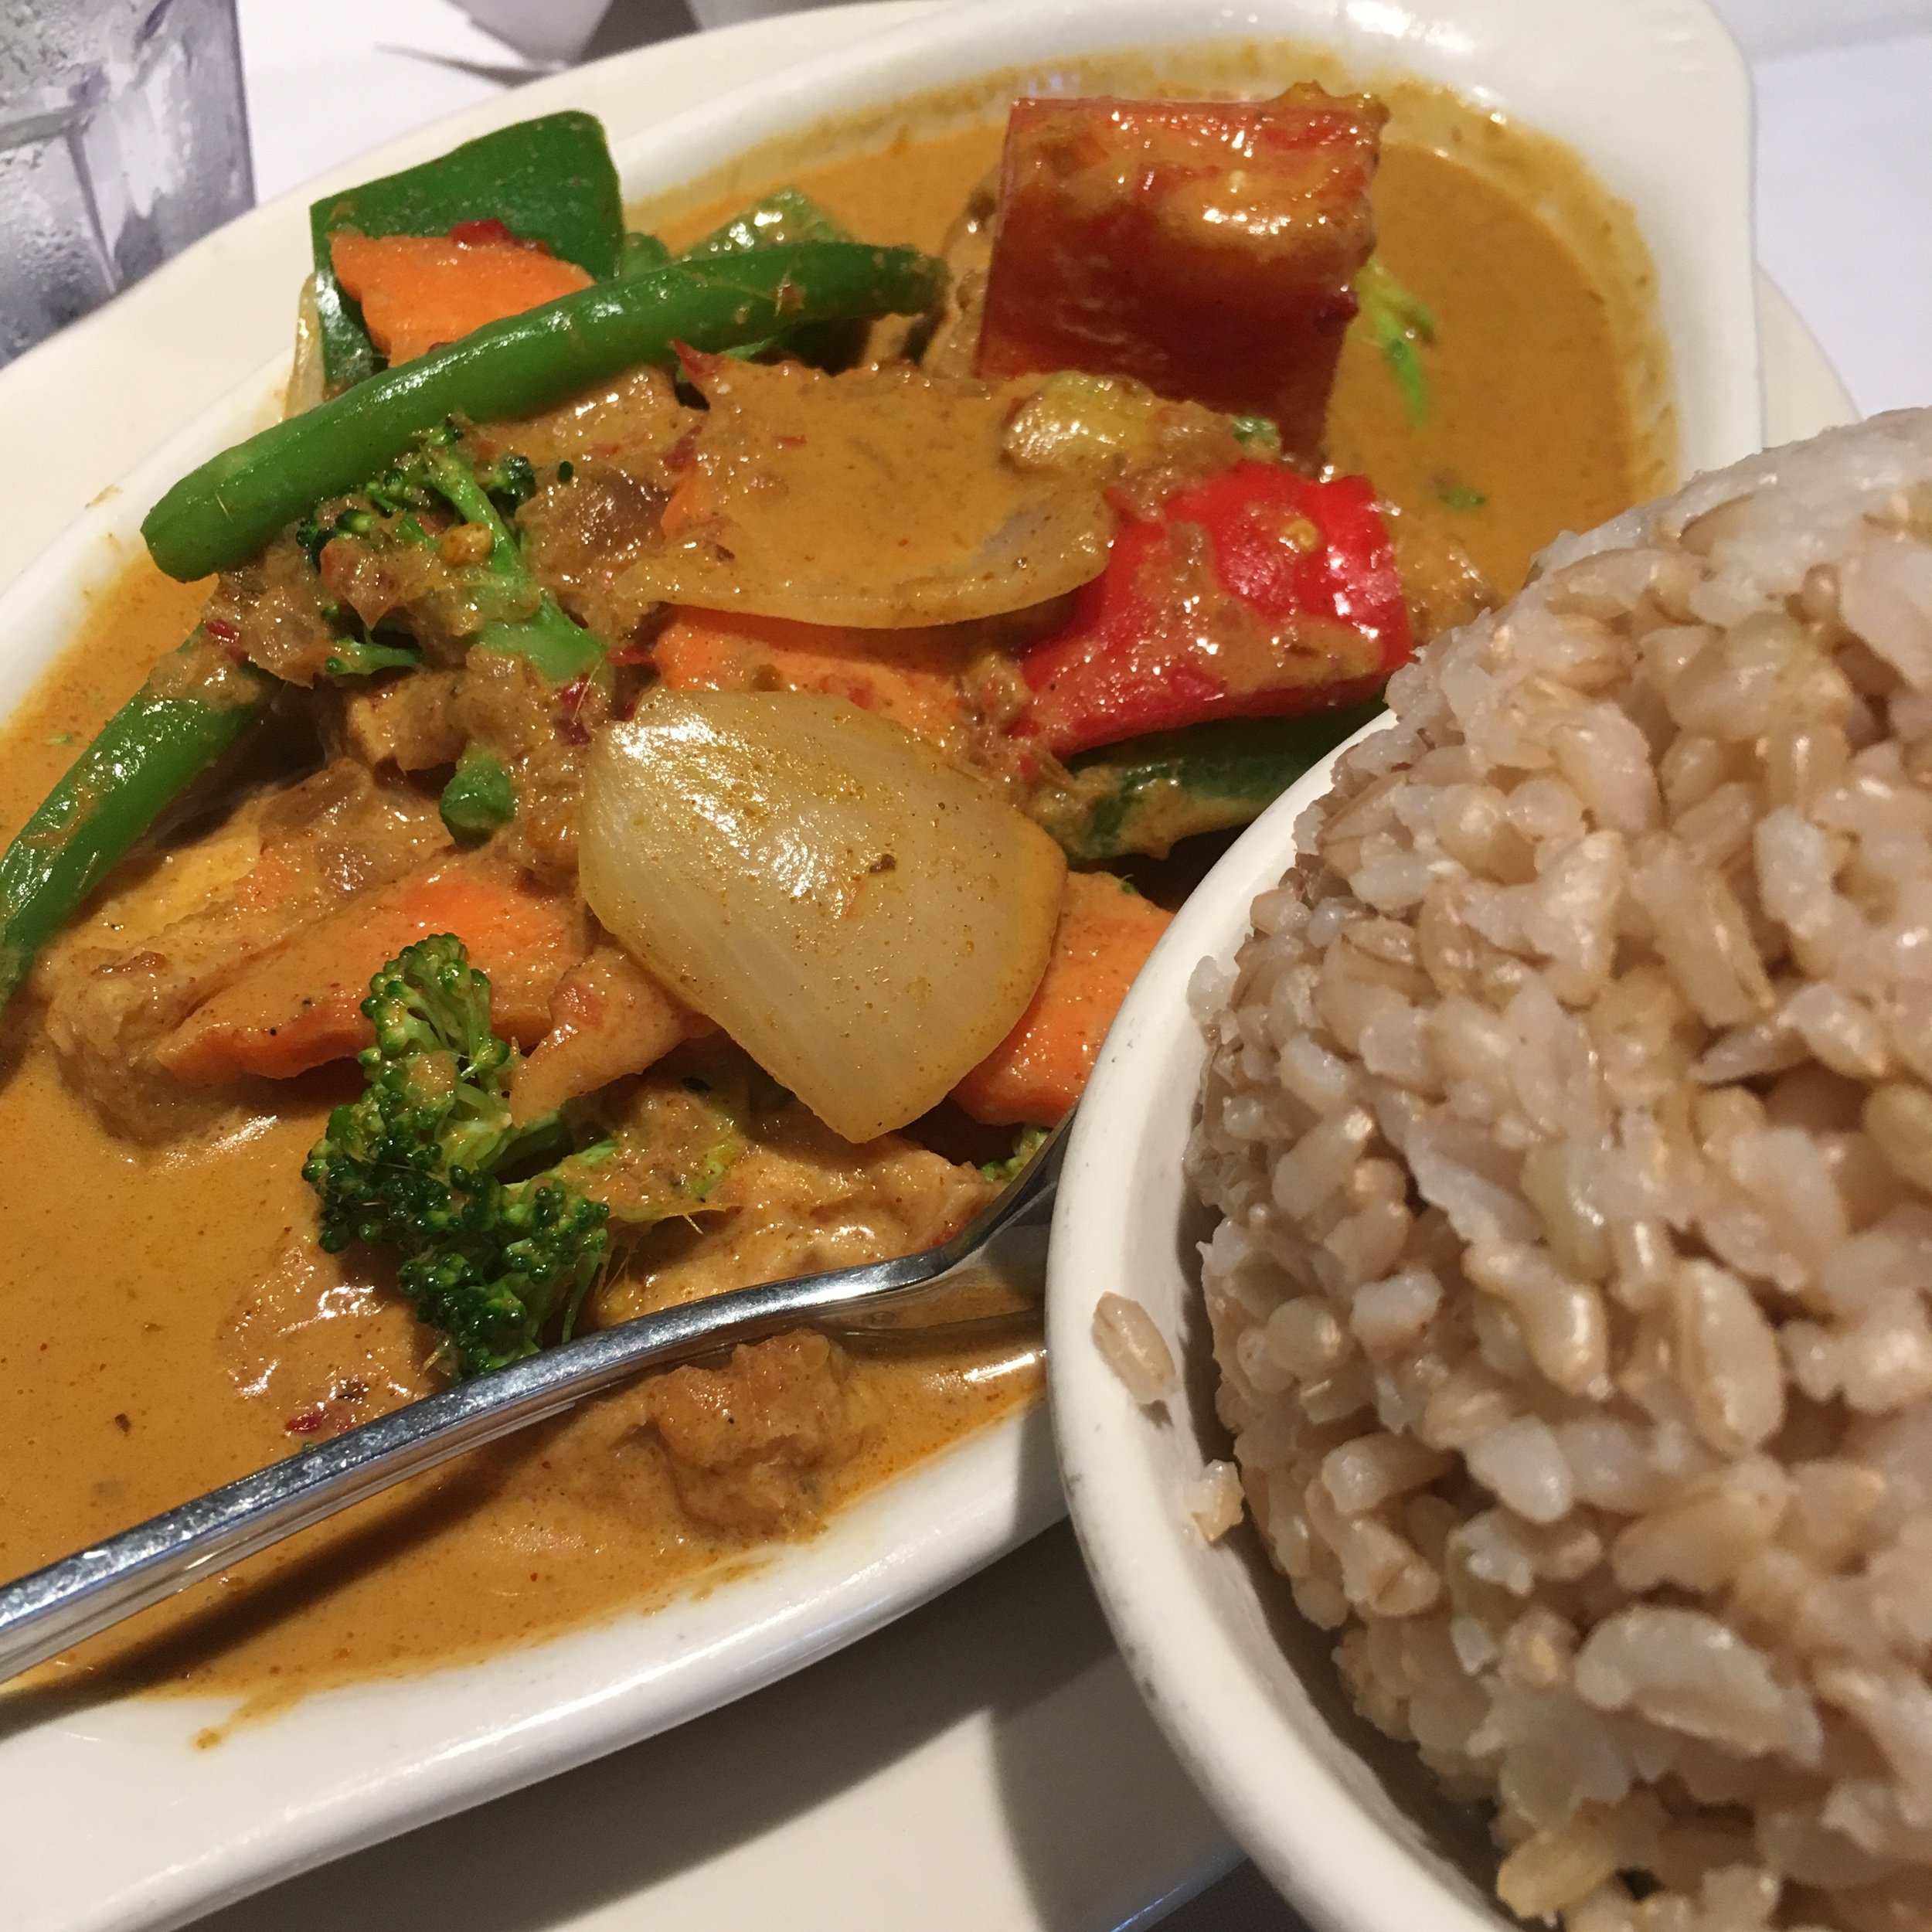 Curry veggies, tofu and brown rice at a restaurant in Cambridge. Not the best I've every had, but it was cleanse friendly